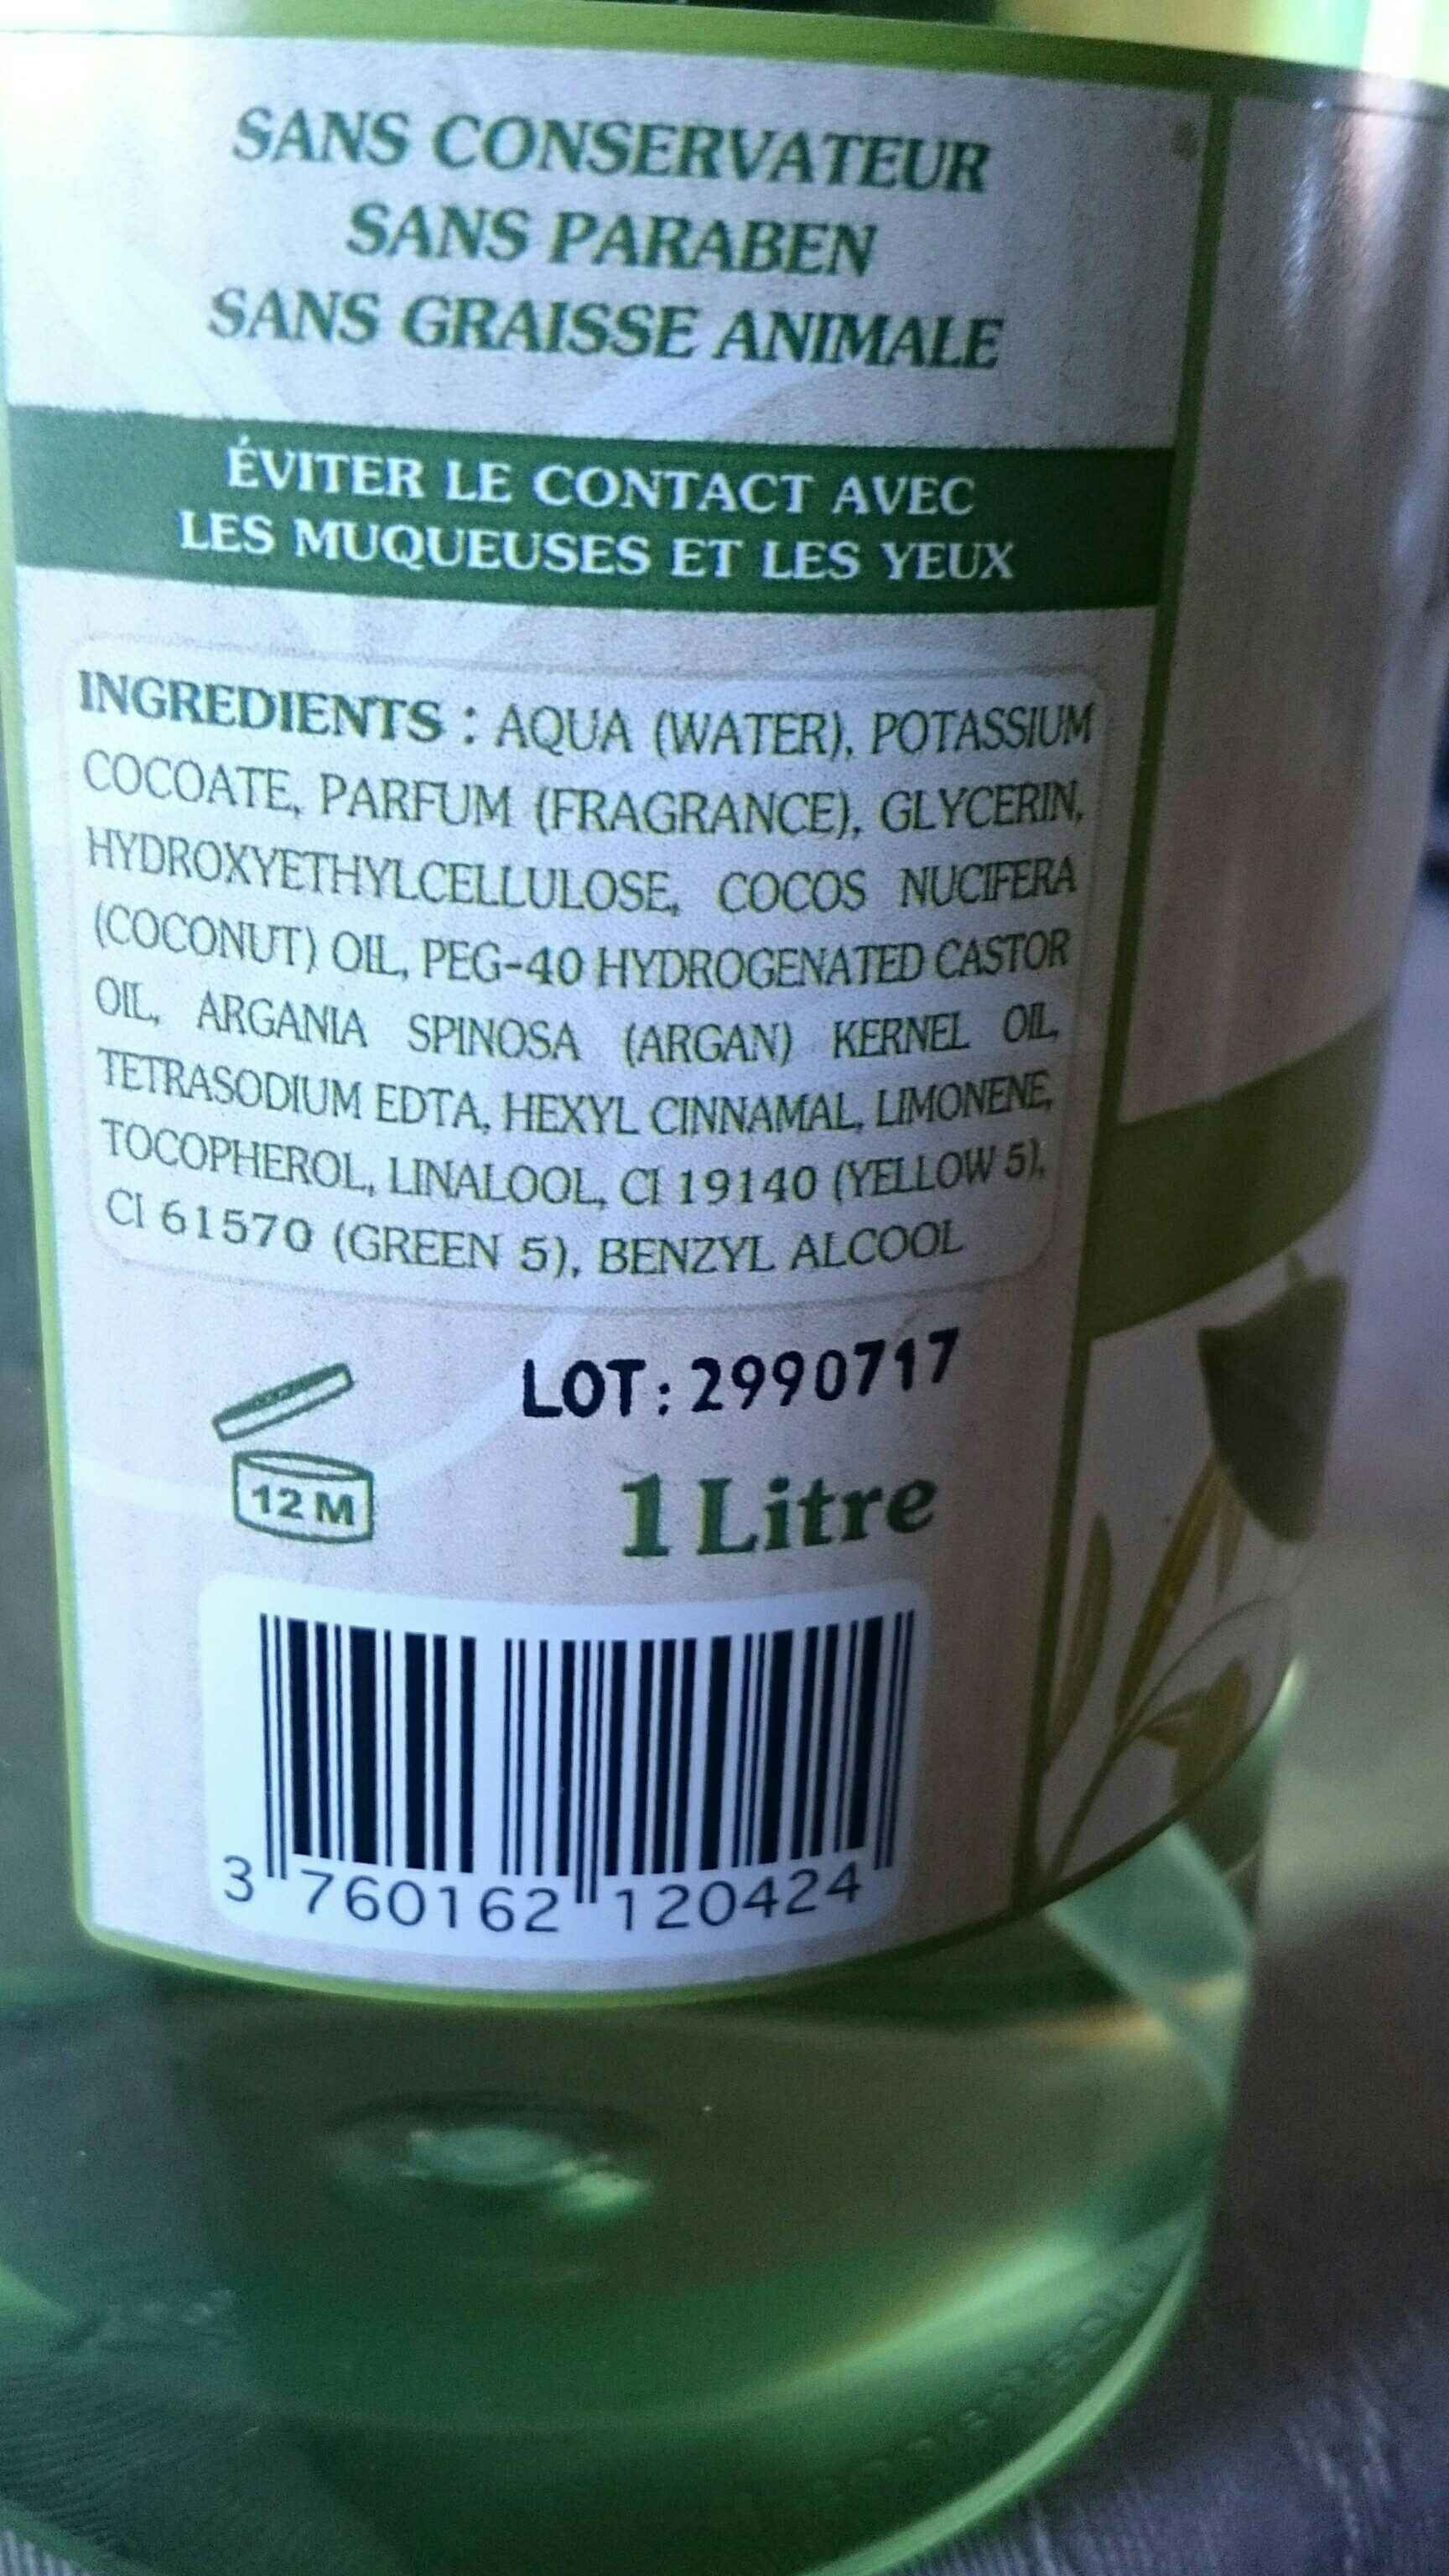 MKL Savon De Marseille the Vert 1 Litre - Ingredients